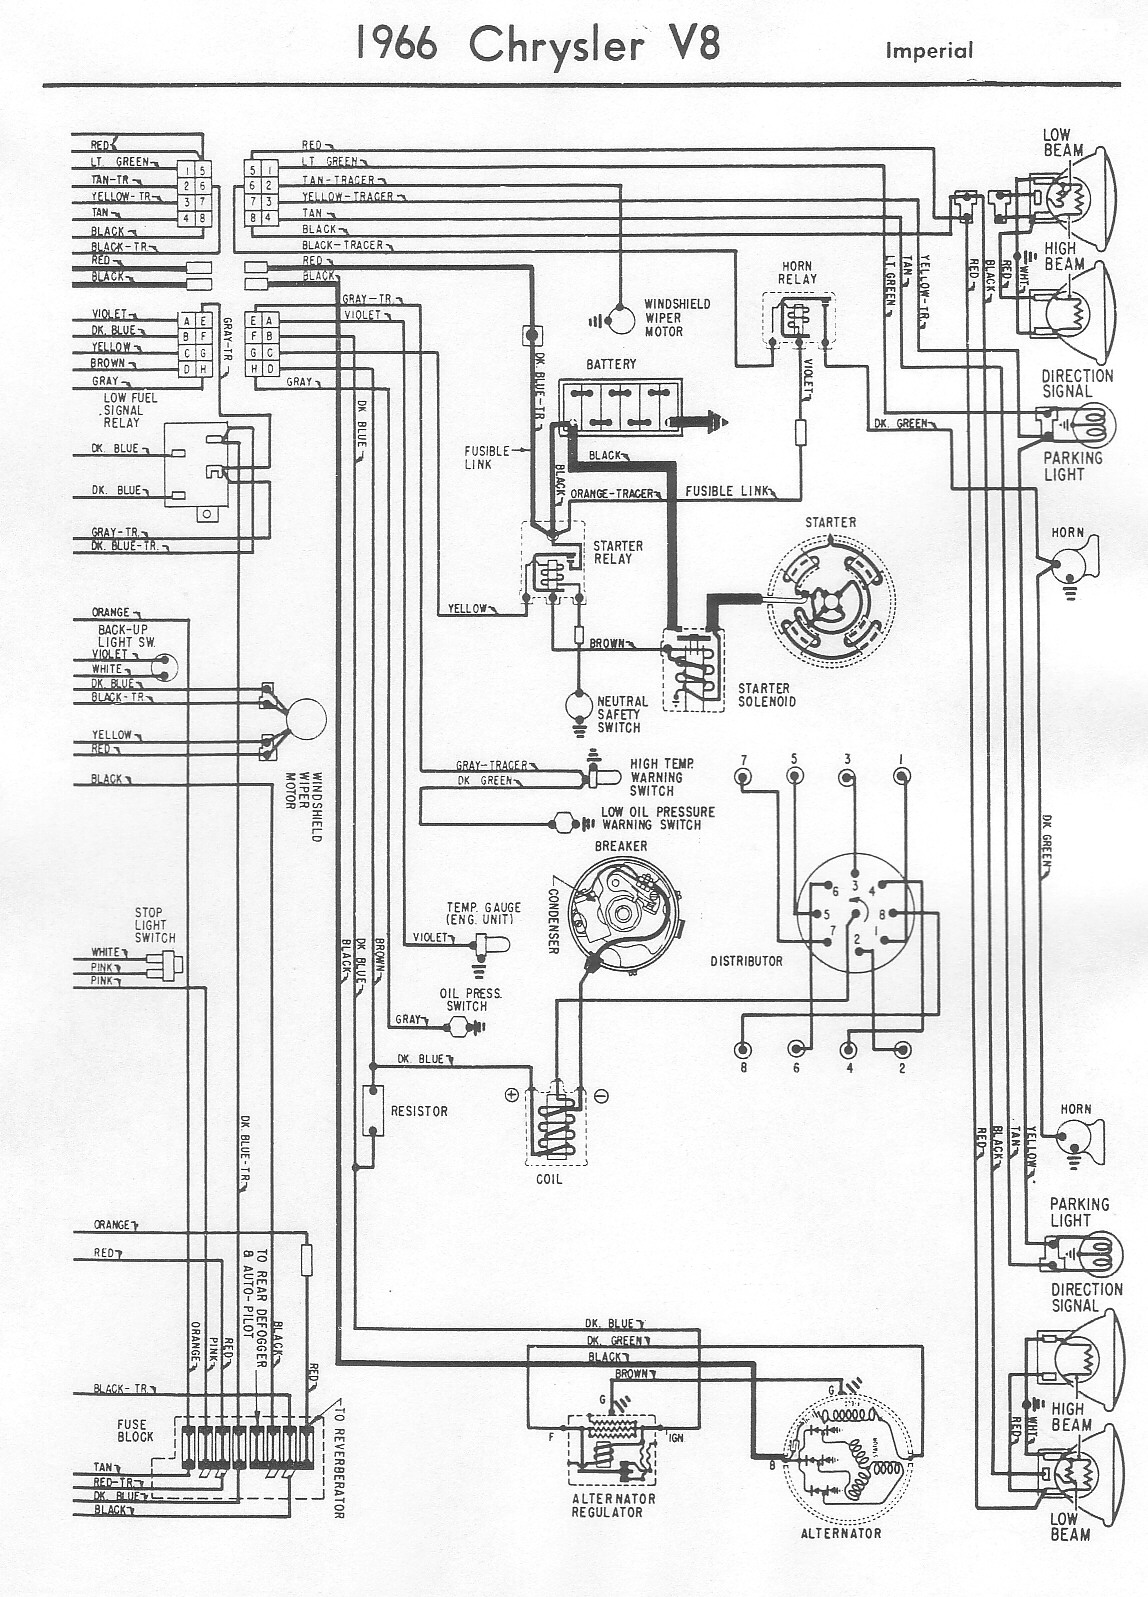 Fascinating plymouth wiring diagrams images best image engine amazing 1970 plymouth road runner wiring diagram photos sciox Gallery